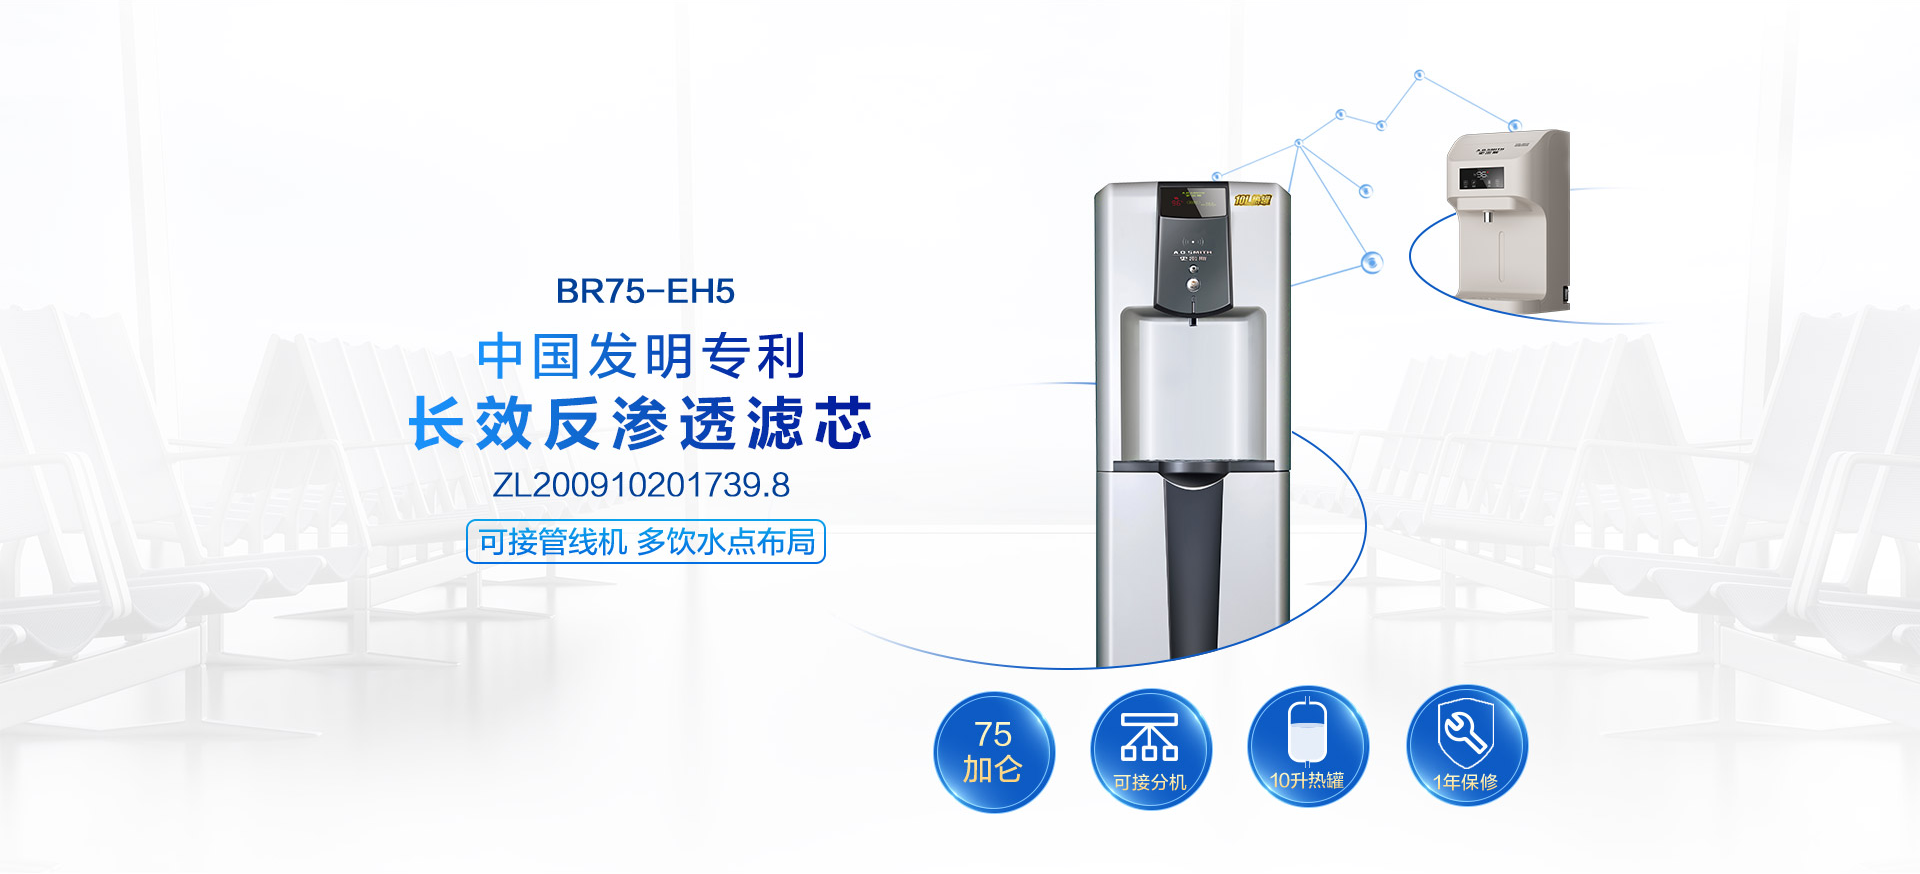 BR75-EH5